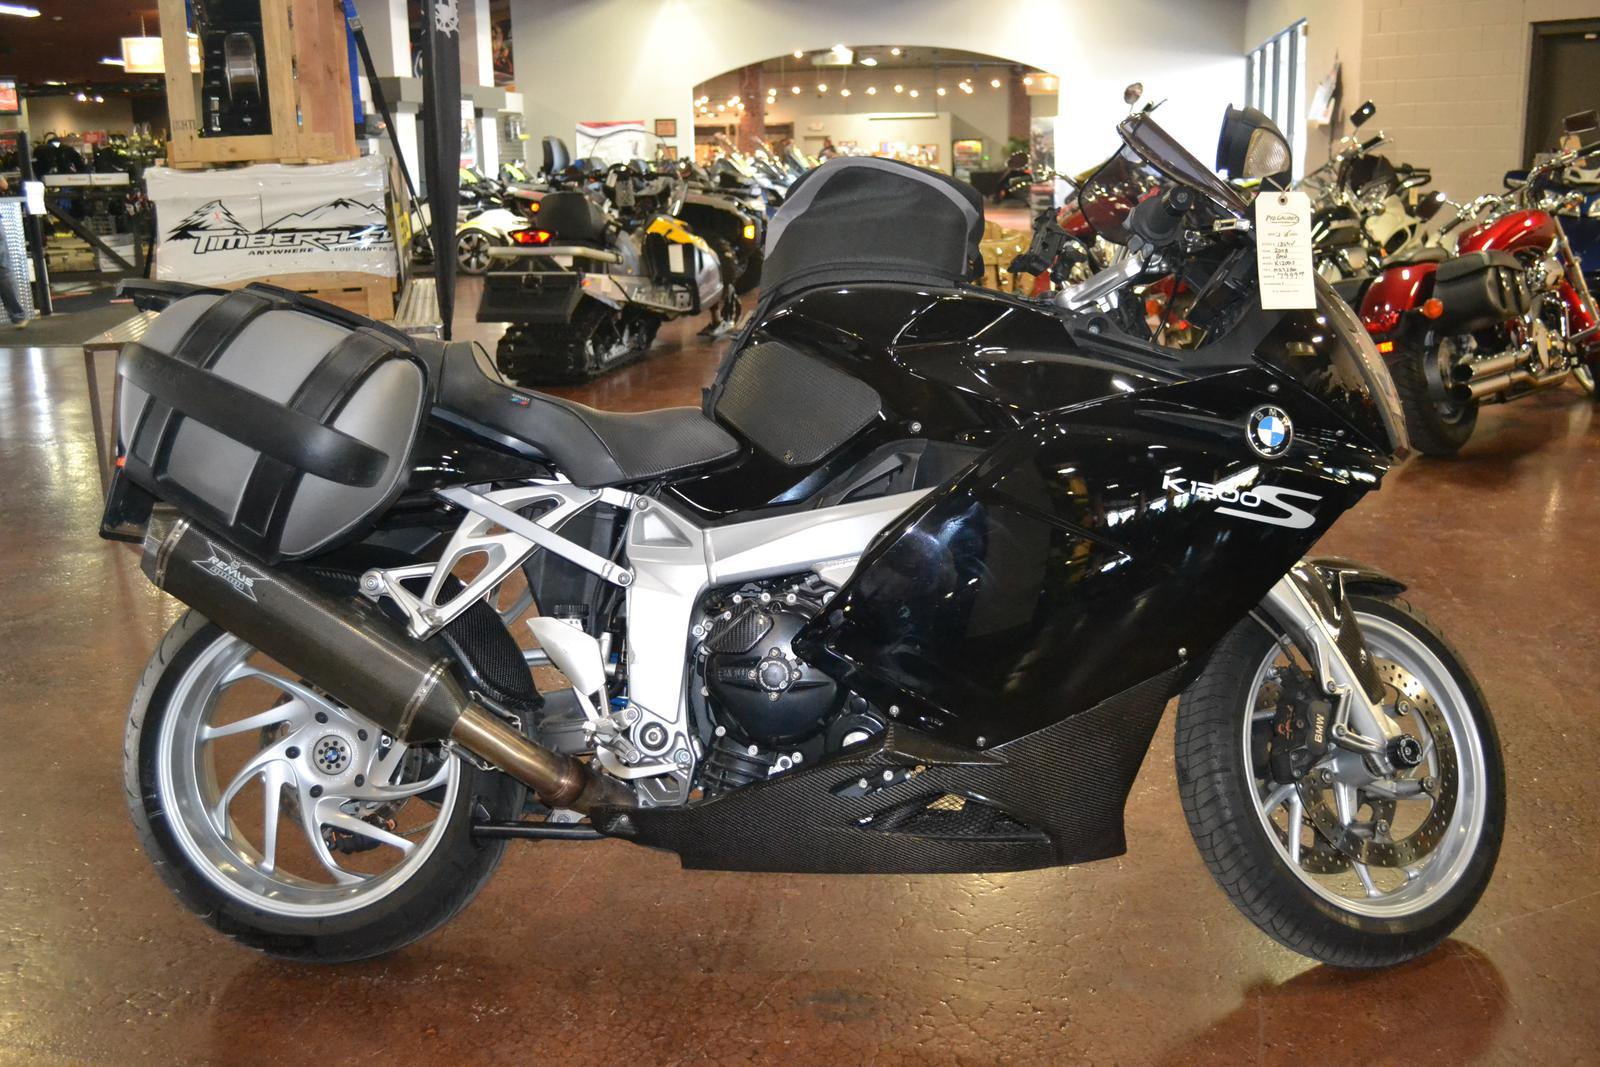 2008 bmw k 1200 s for sale in vancouver, wa | bmw motorcycles of